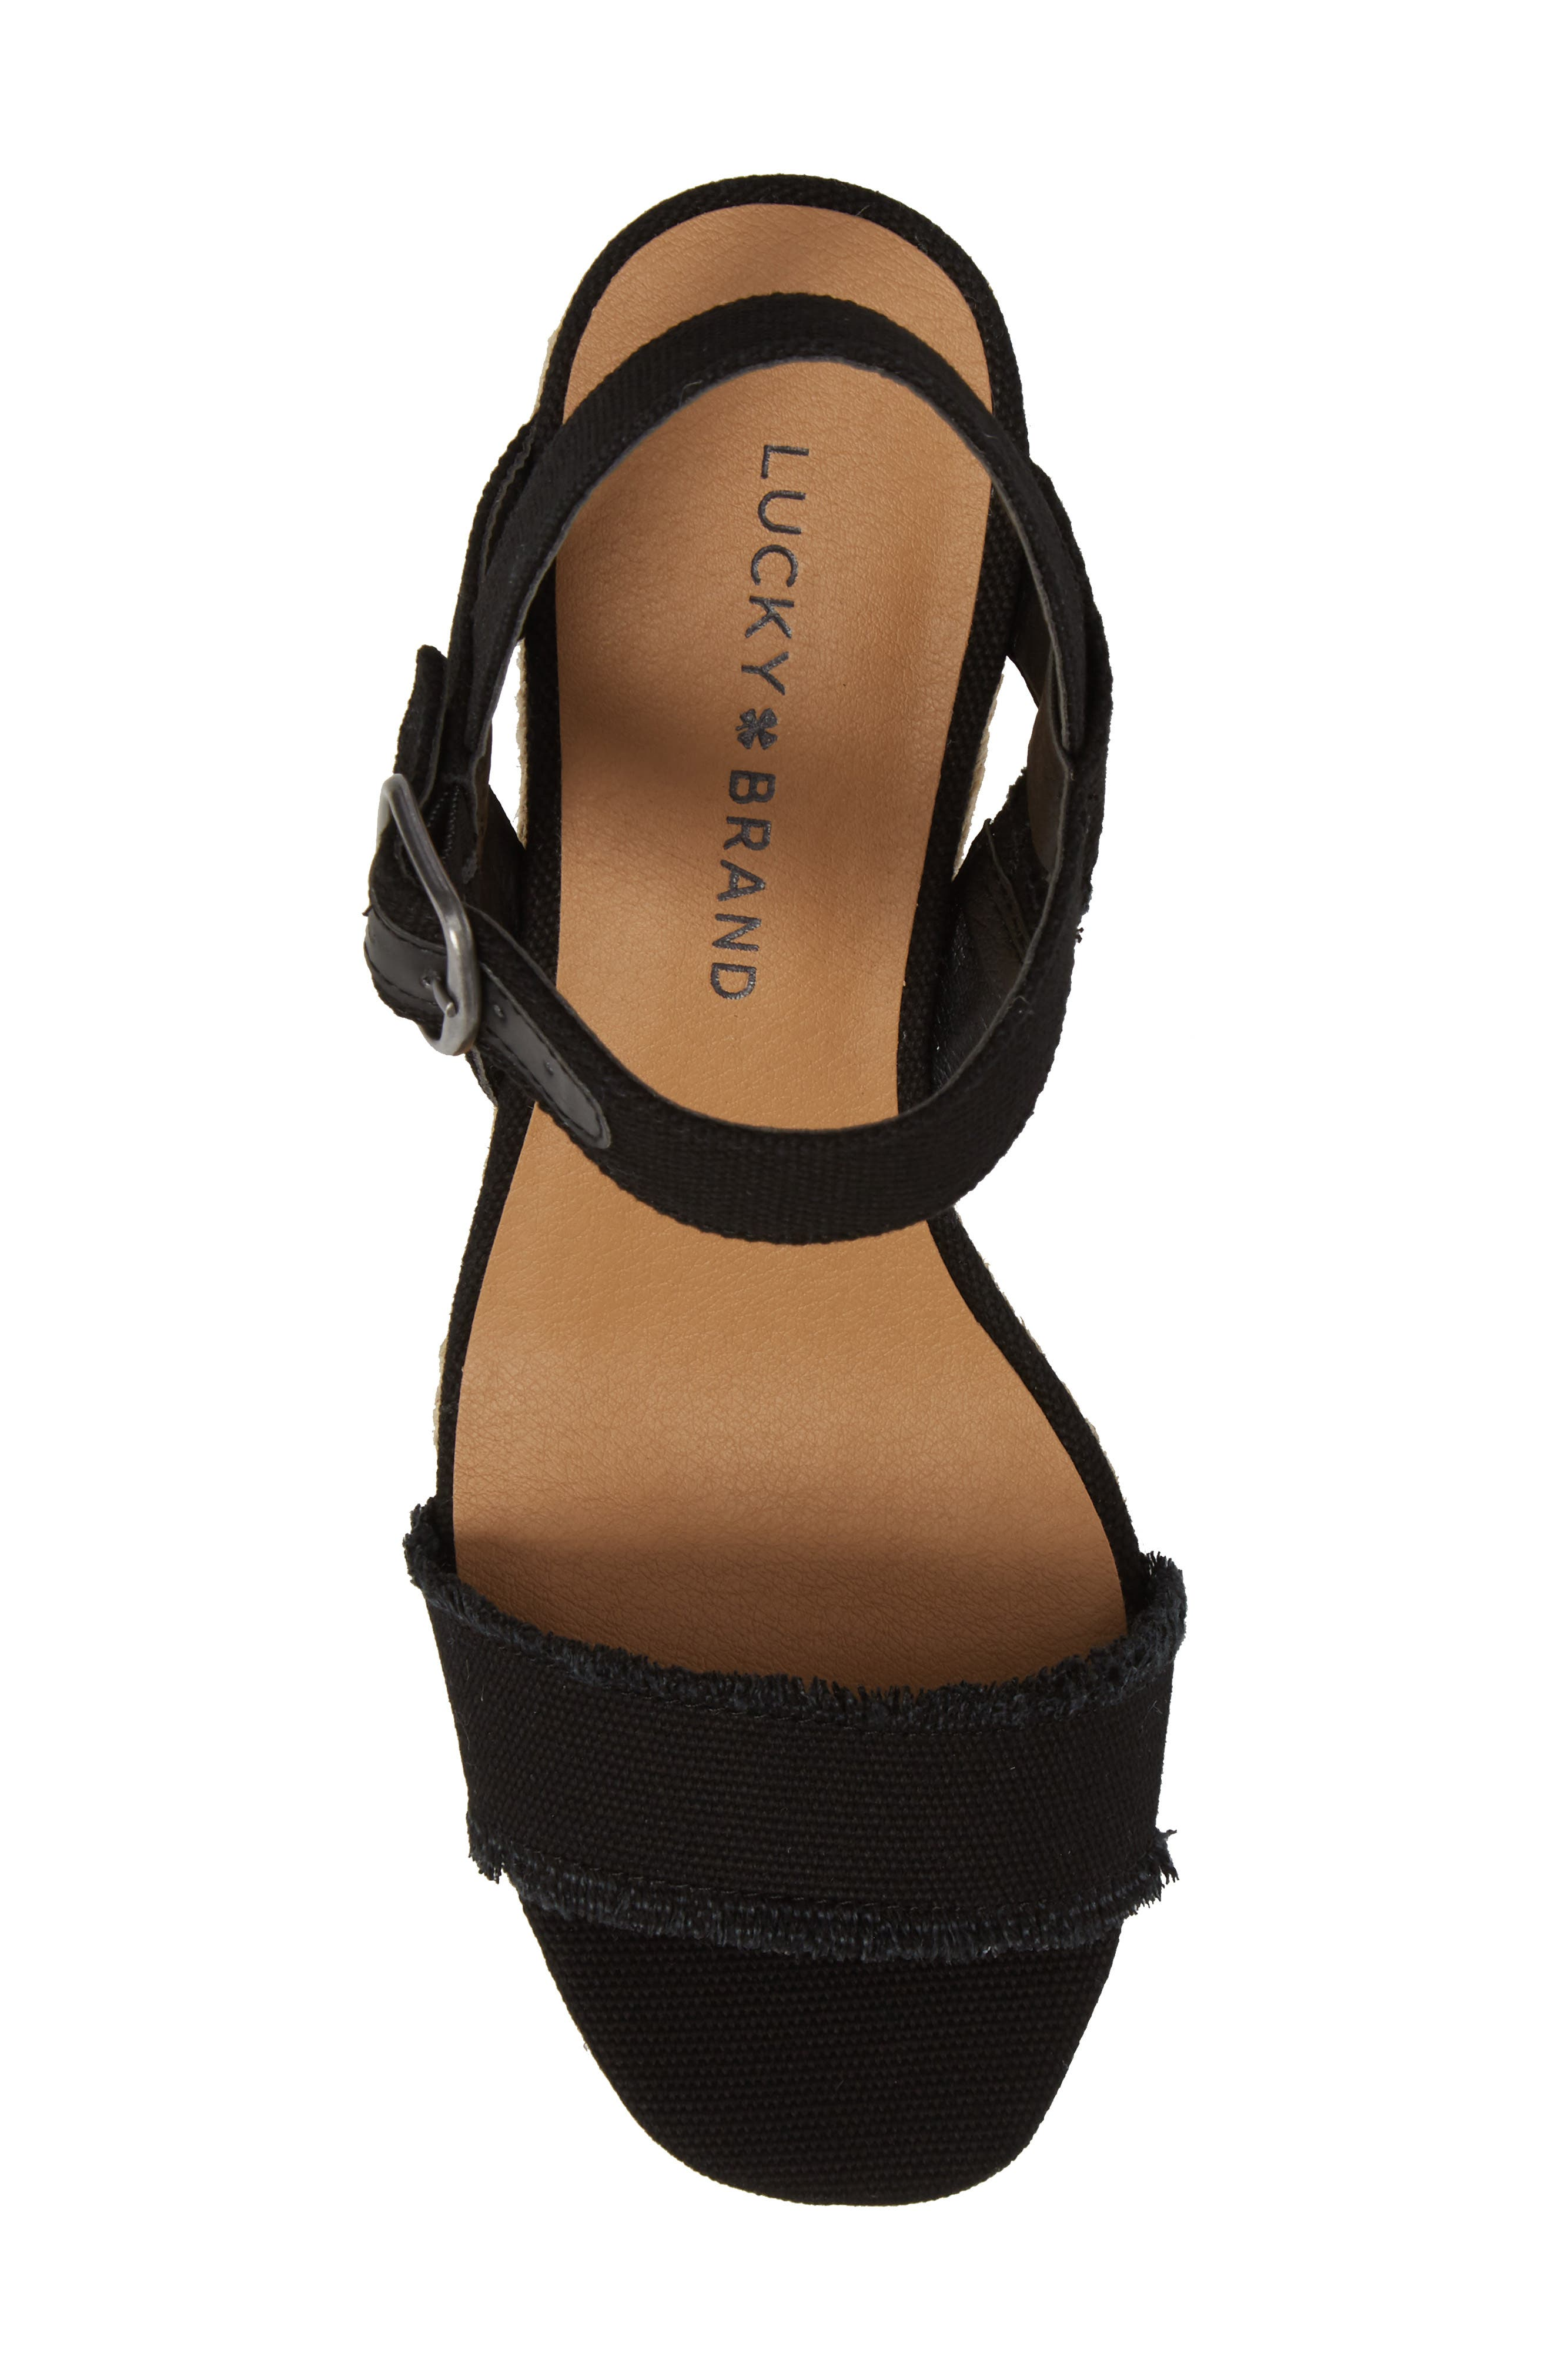 Marceline Squared Toe Wedge Sandal,                             Alternate thumbnail 5, color,                             001